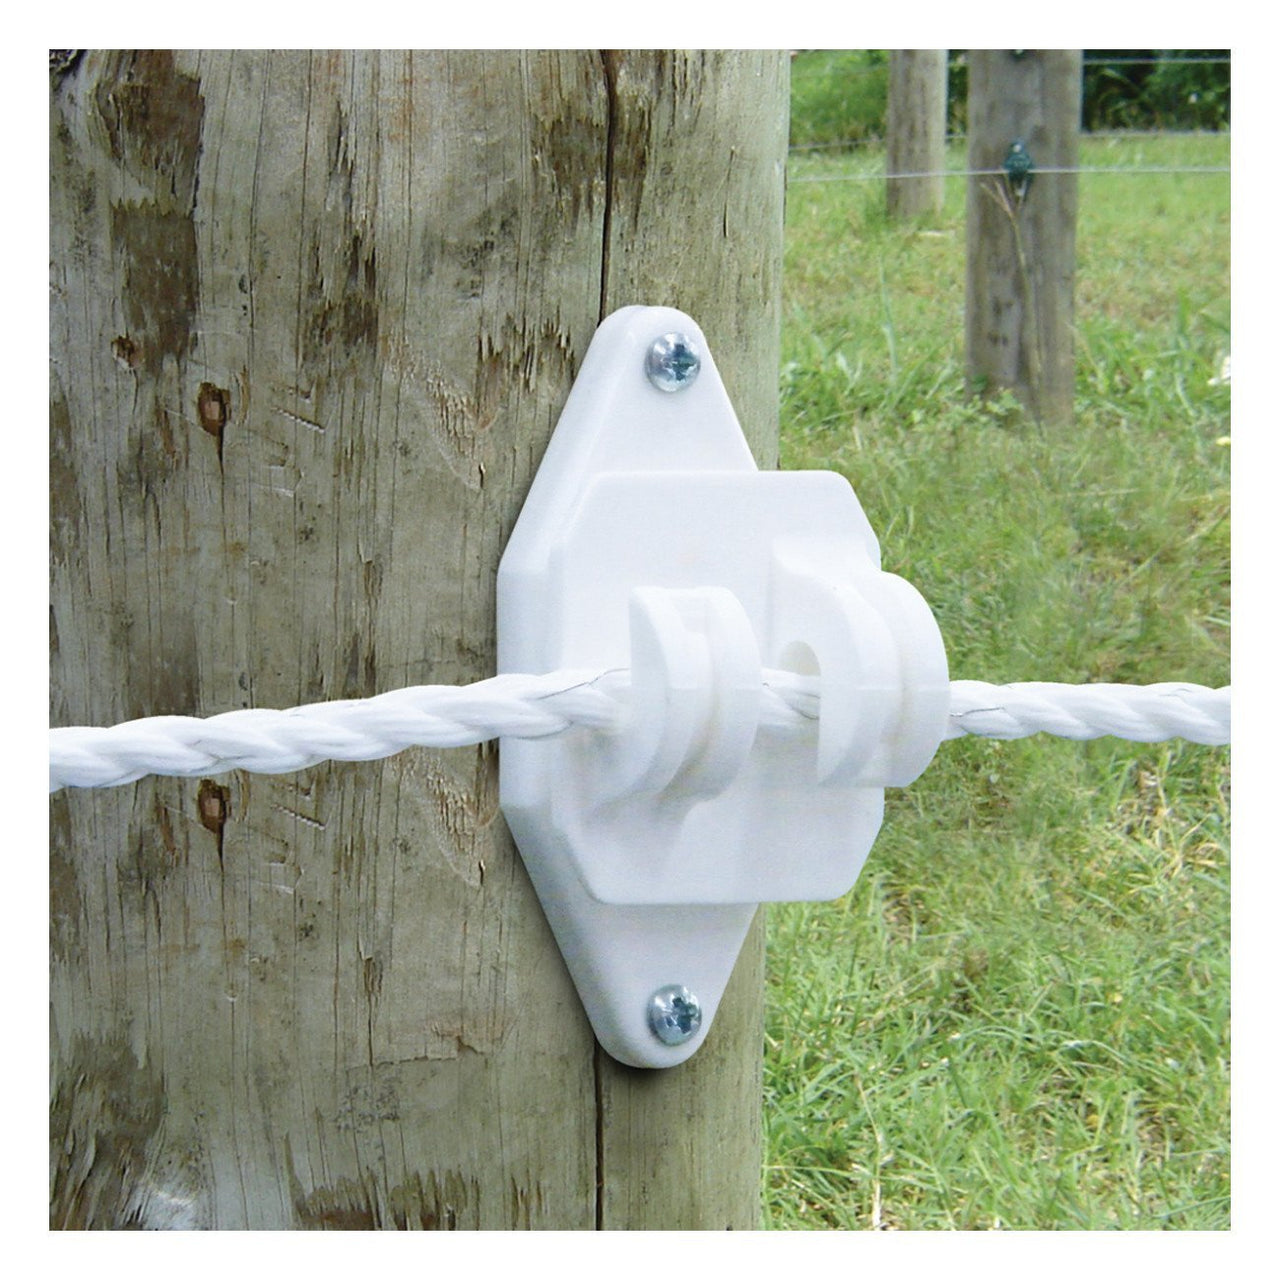 Patriot White Wood Post Claw Insulator (25 Pack) - Fencing Patriot - Canada